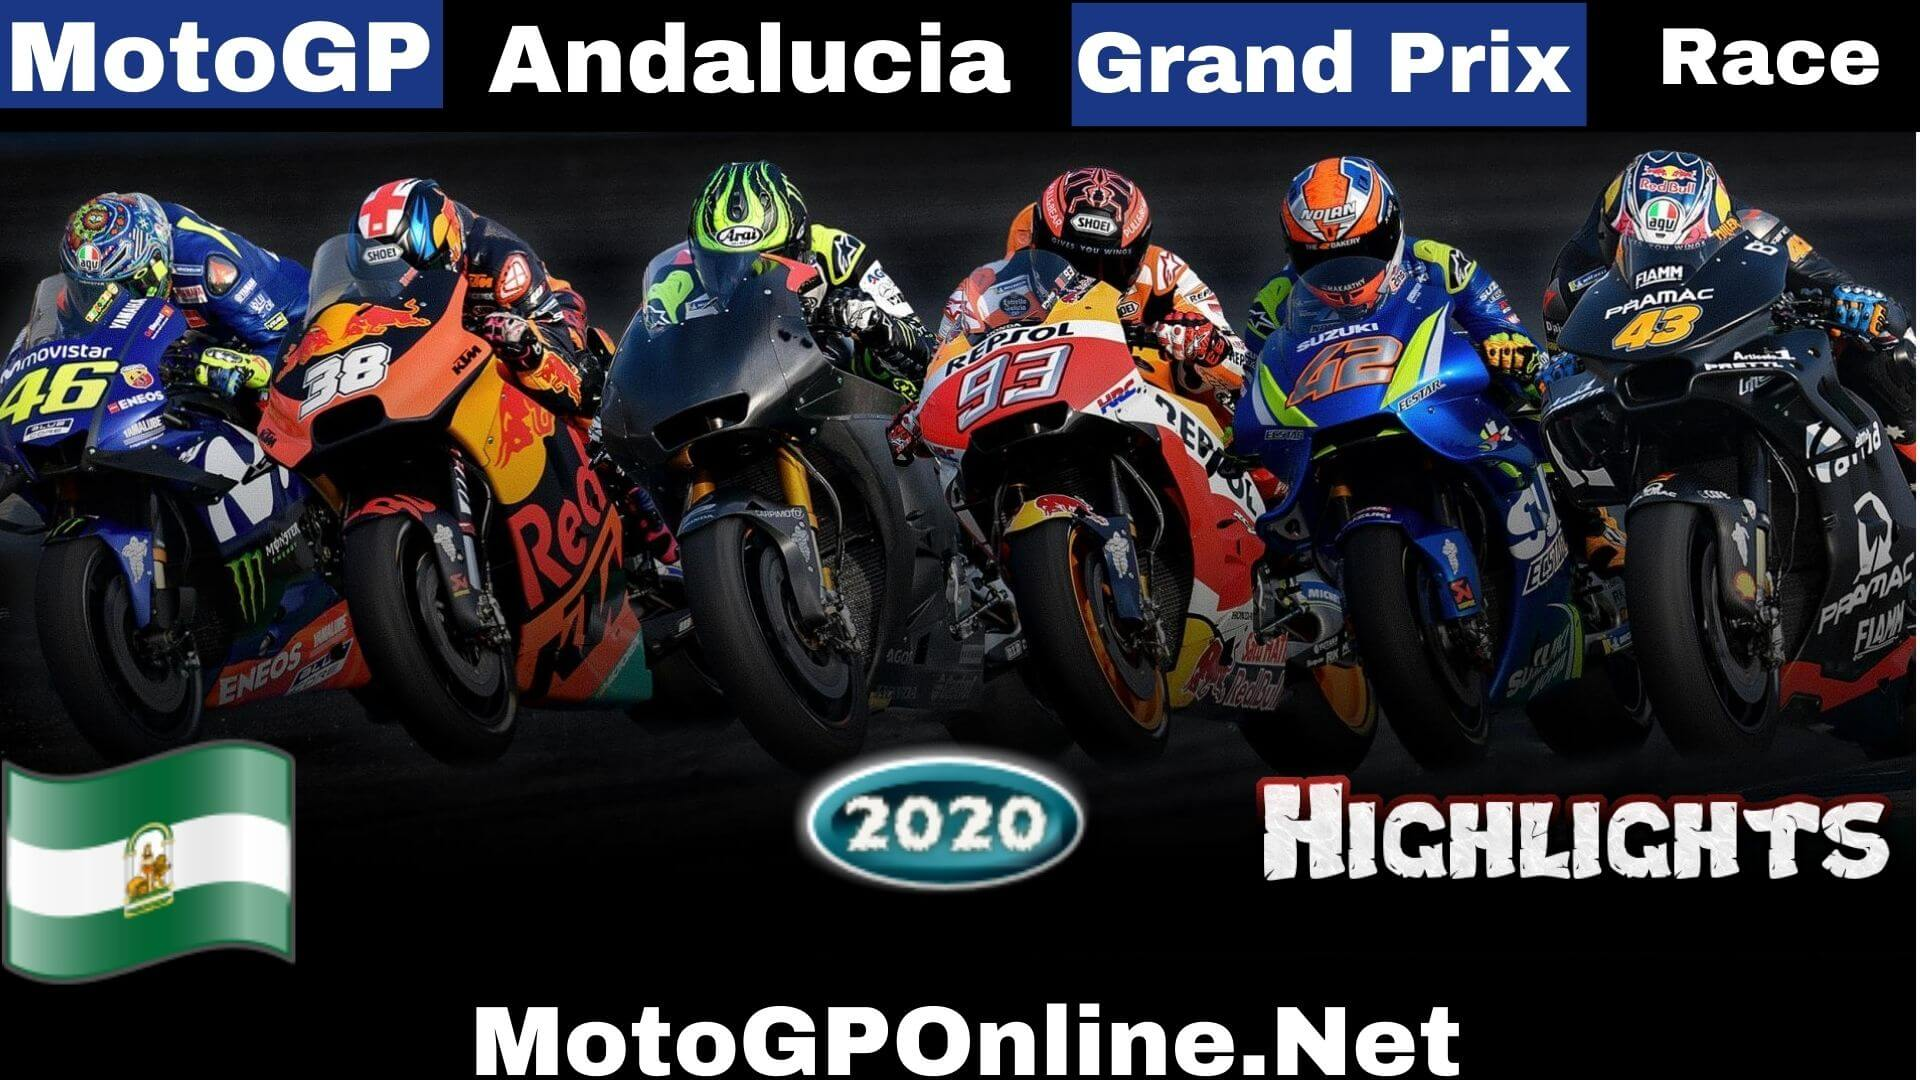 MotoGP Andalucia Grand Prix Highlights 2020 Race